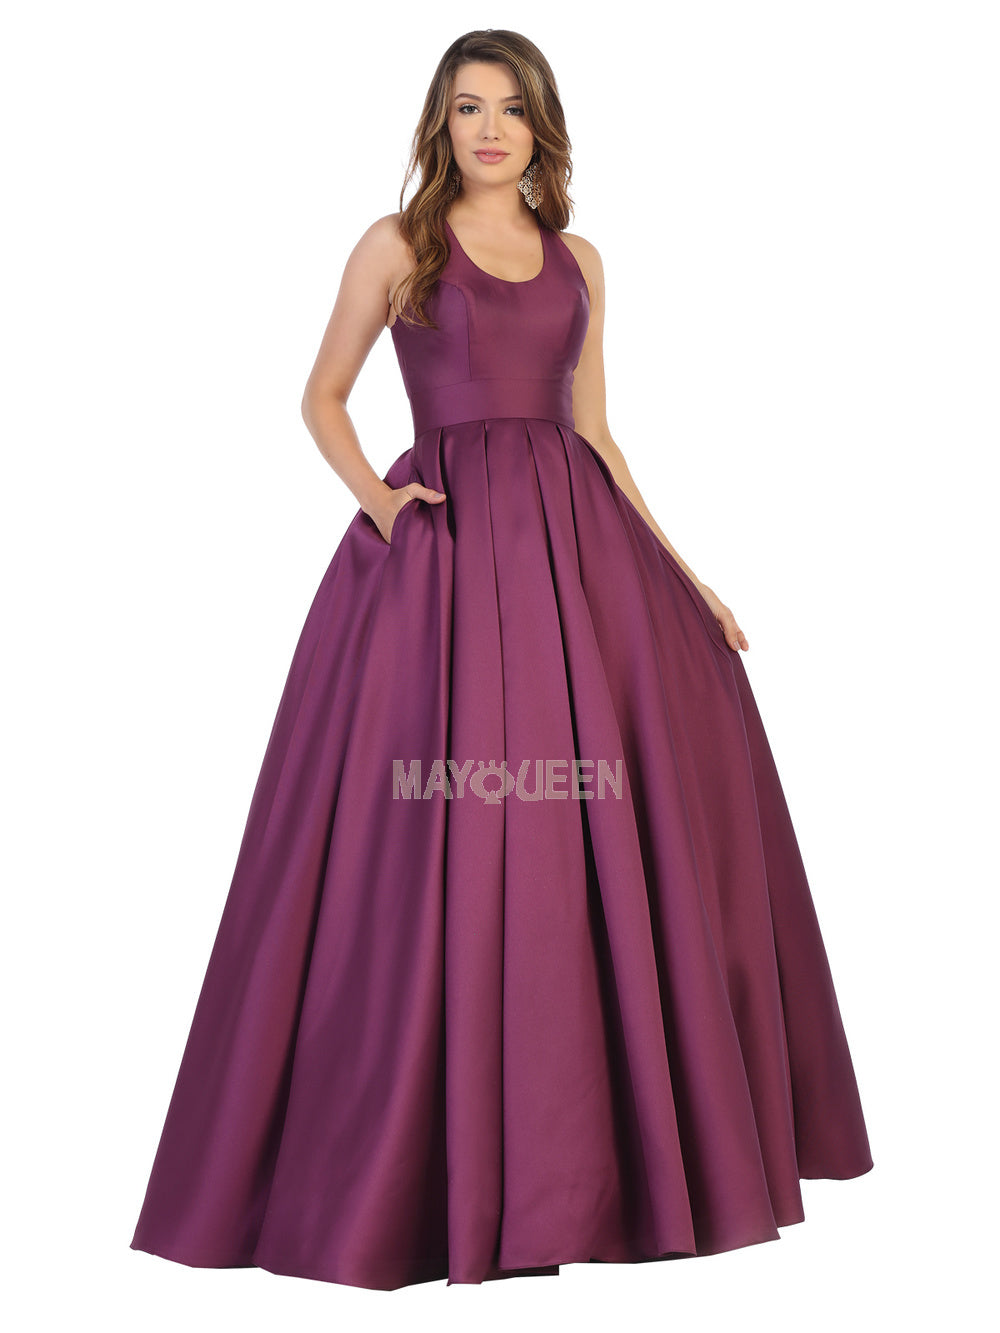 Mayqueen Size Chart E MQ 1721 - Satin Ball Gown with Scoop Neckline, Keyhole Back, and Pockets - Diggz Prom